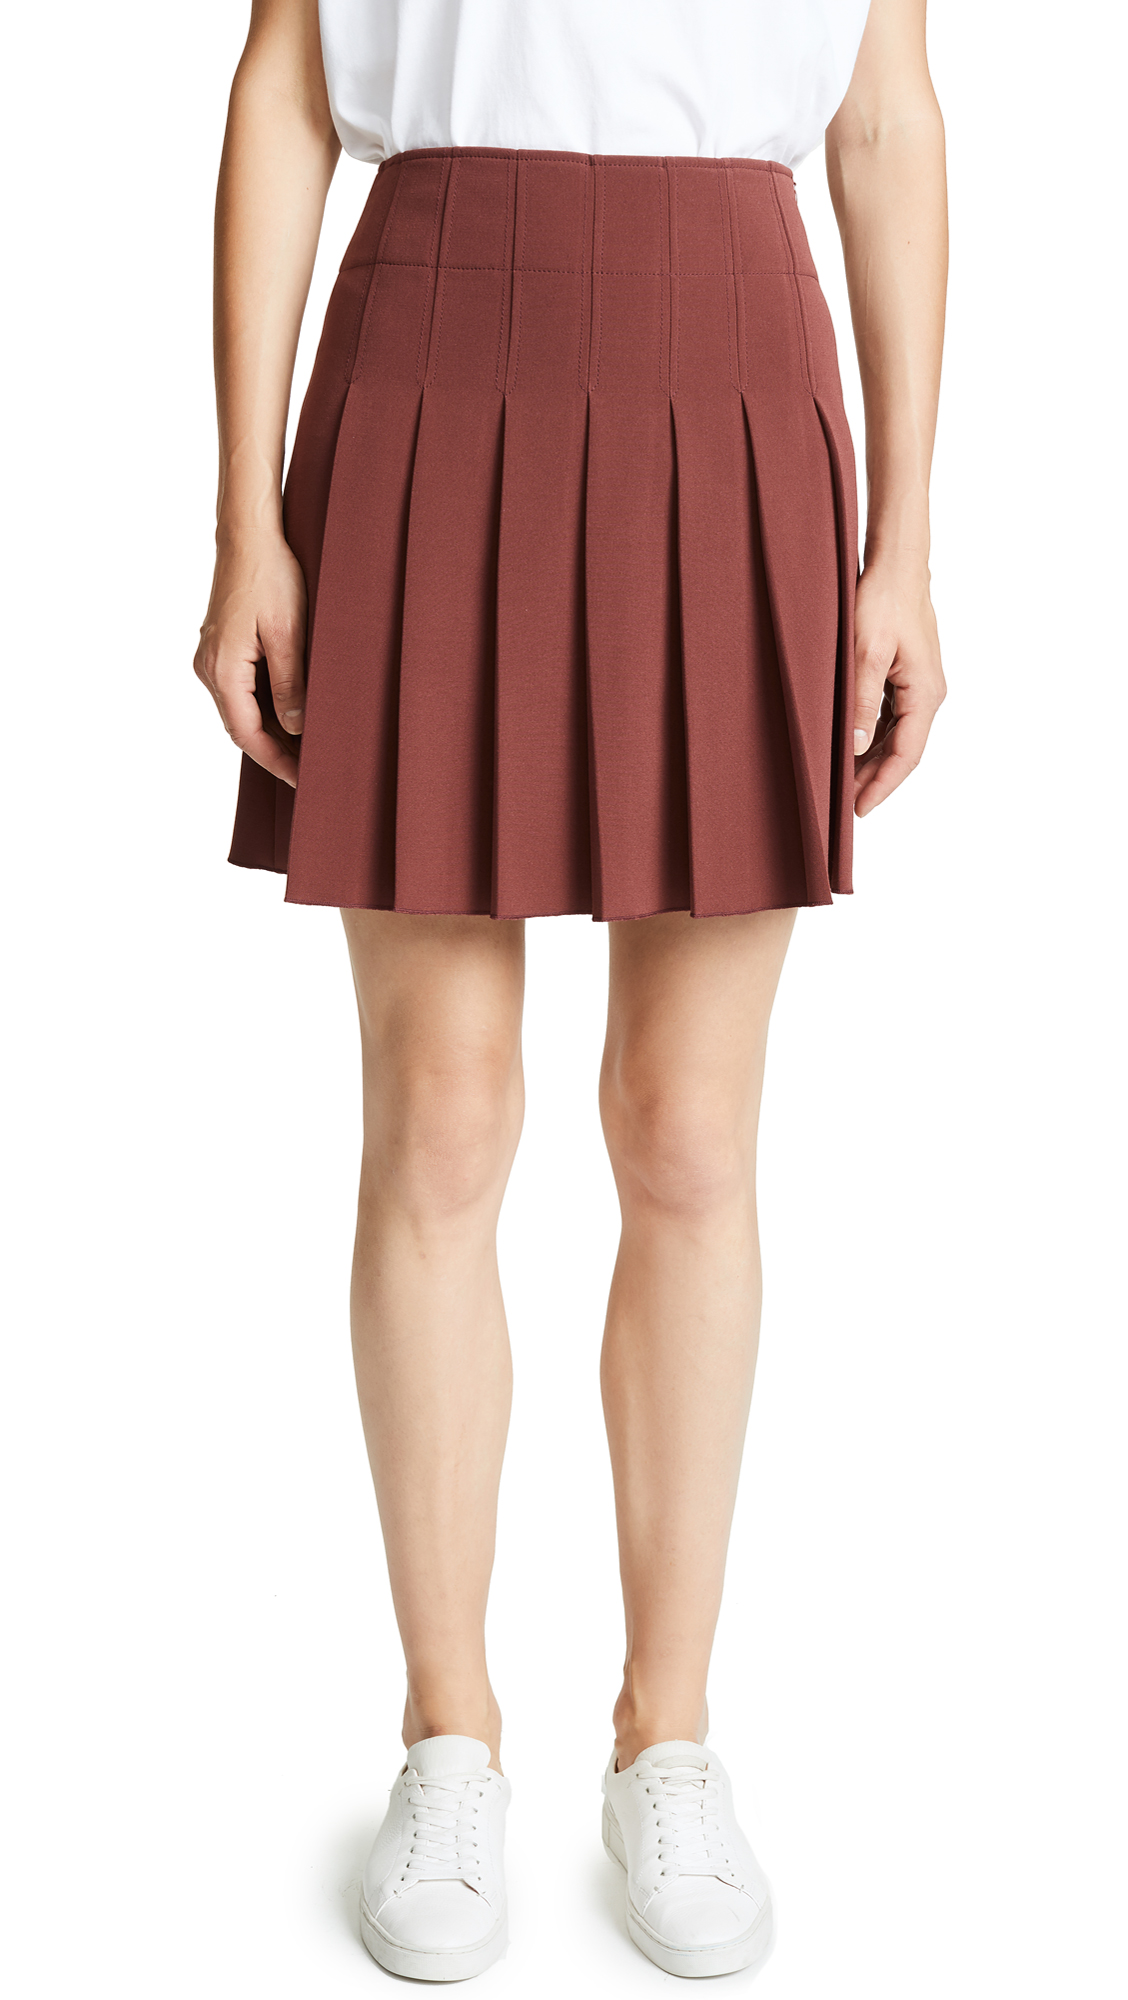 A.P.C. Ella Skirt In Vino